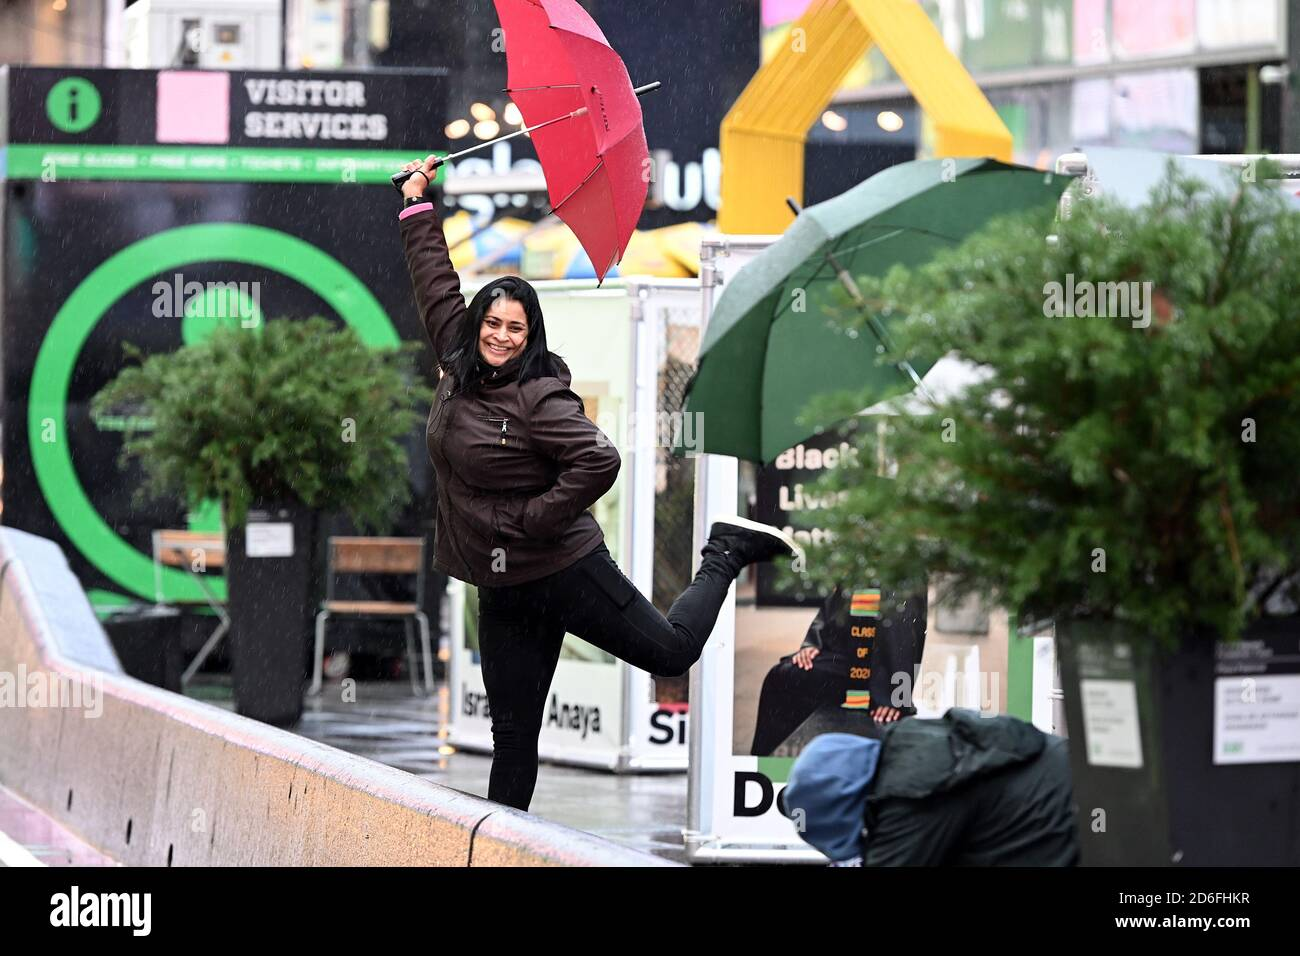 New York City, USA. 16th Oct, 2020. A woman strikes a pose for a friend with a camera in Times Square, New York, NY, October 16, 2020. With the resurgence of COVID-19 spreading across the United States, tourist hot spots like Times Square and it's businesses continue to feel the economic impact of the Coronavirus pandemic. (Anthony Behar/Sipa USA) Credit: Sipa USA/Alamy Live News Stock Photo